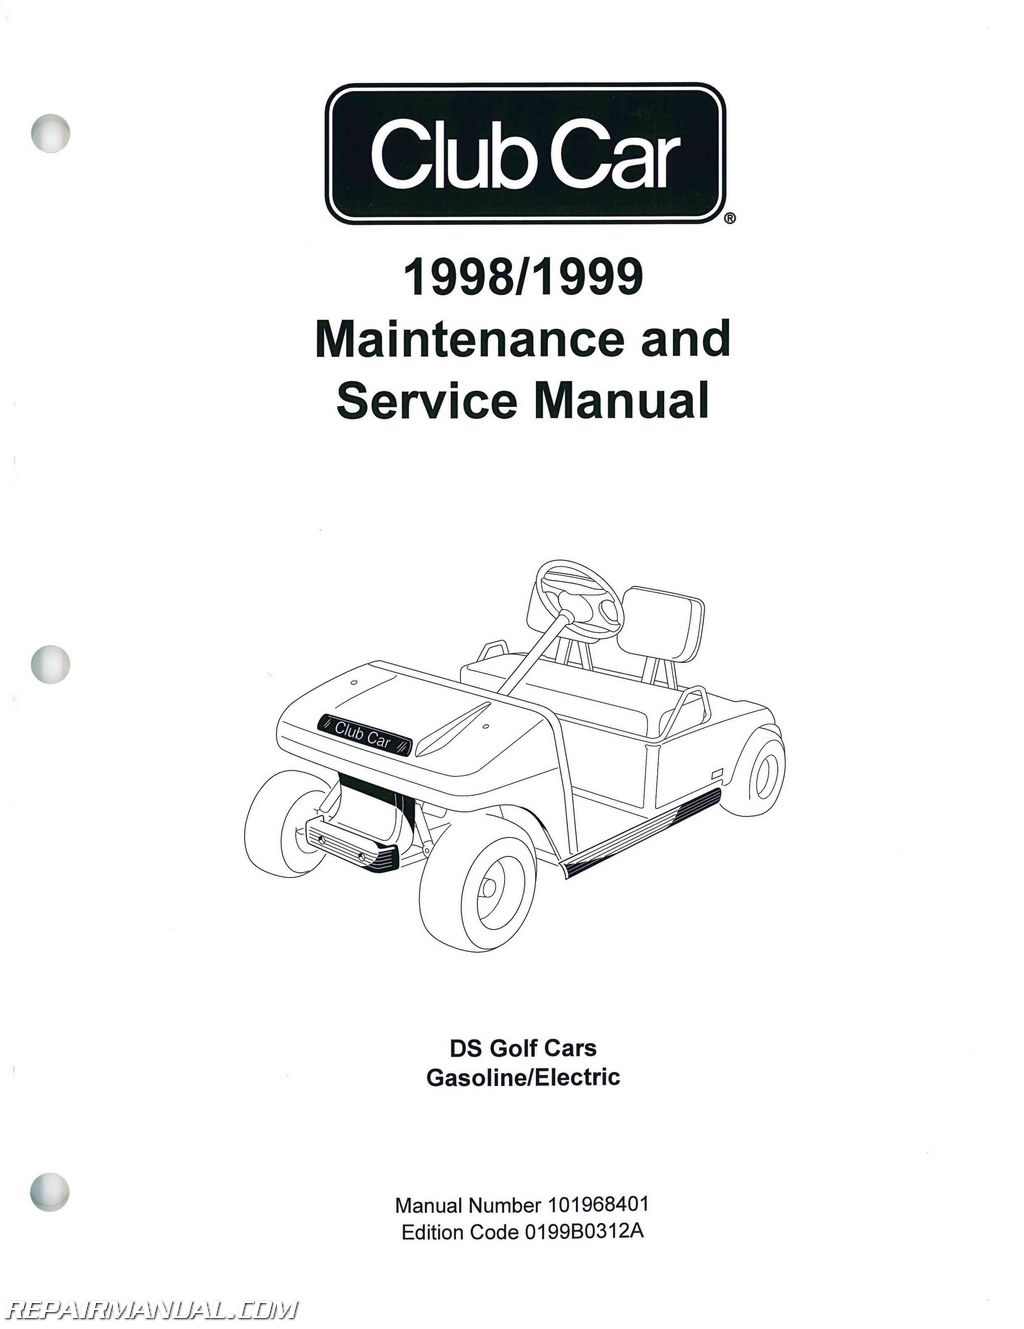 1998-1999 Club Car DS Golf Car Service Manual